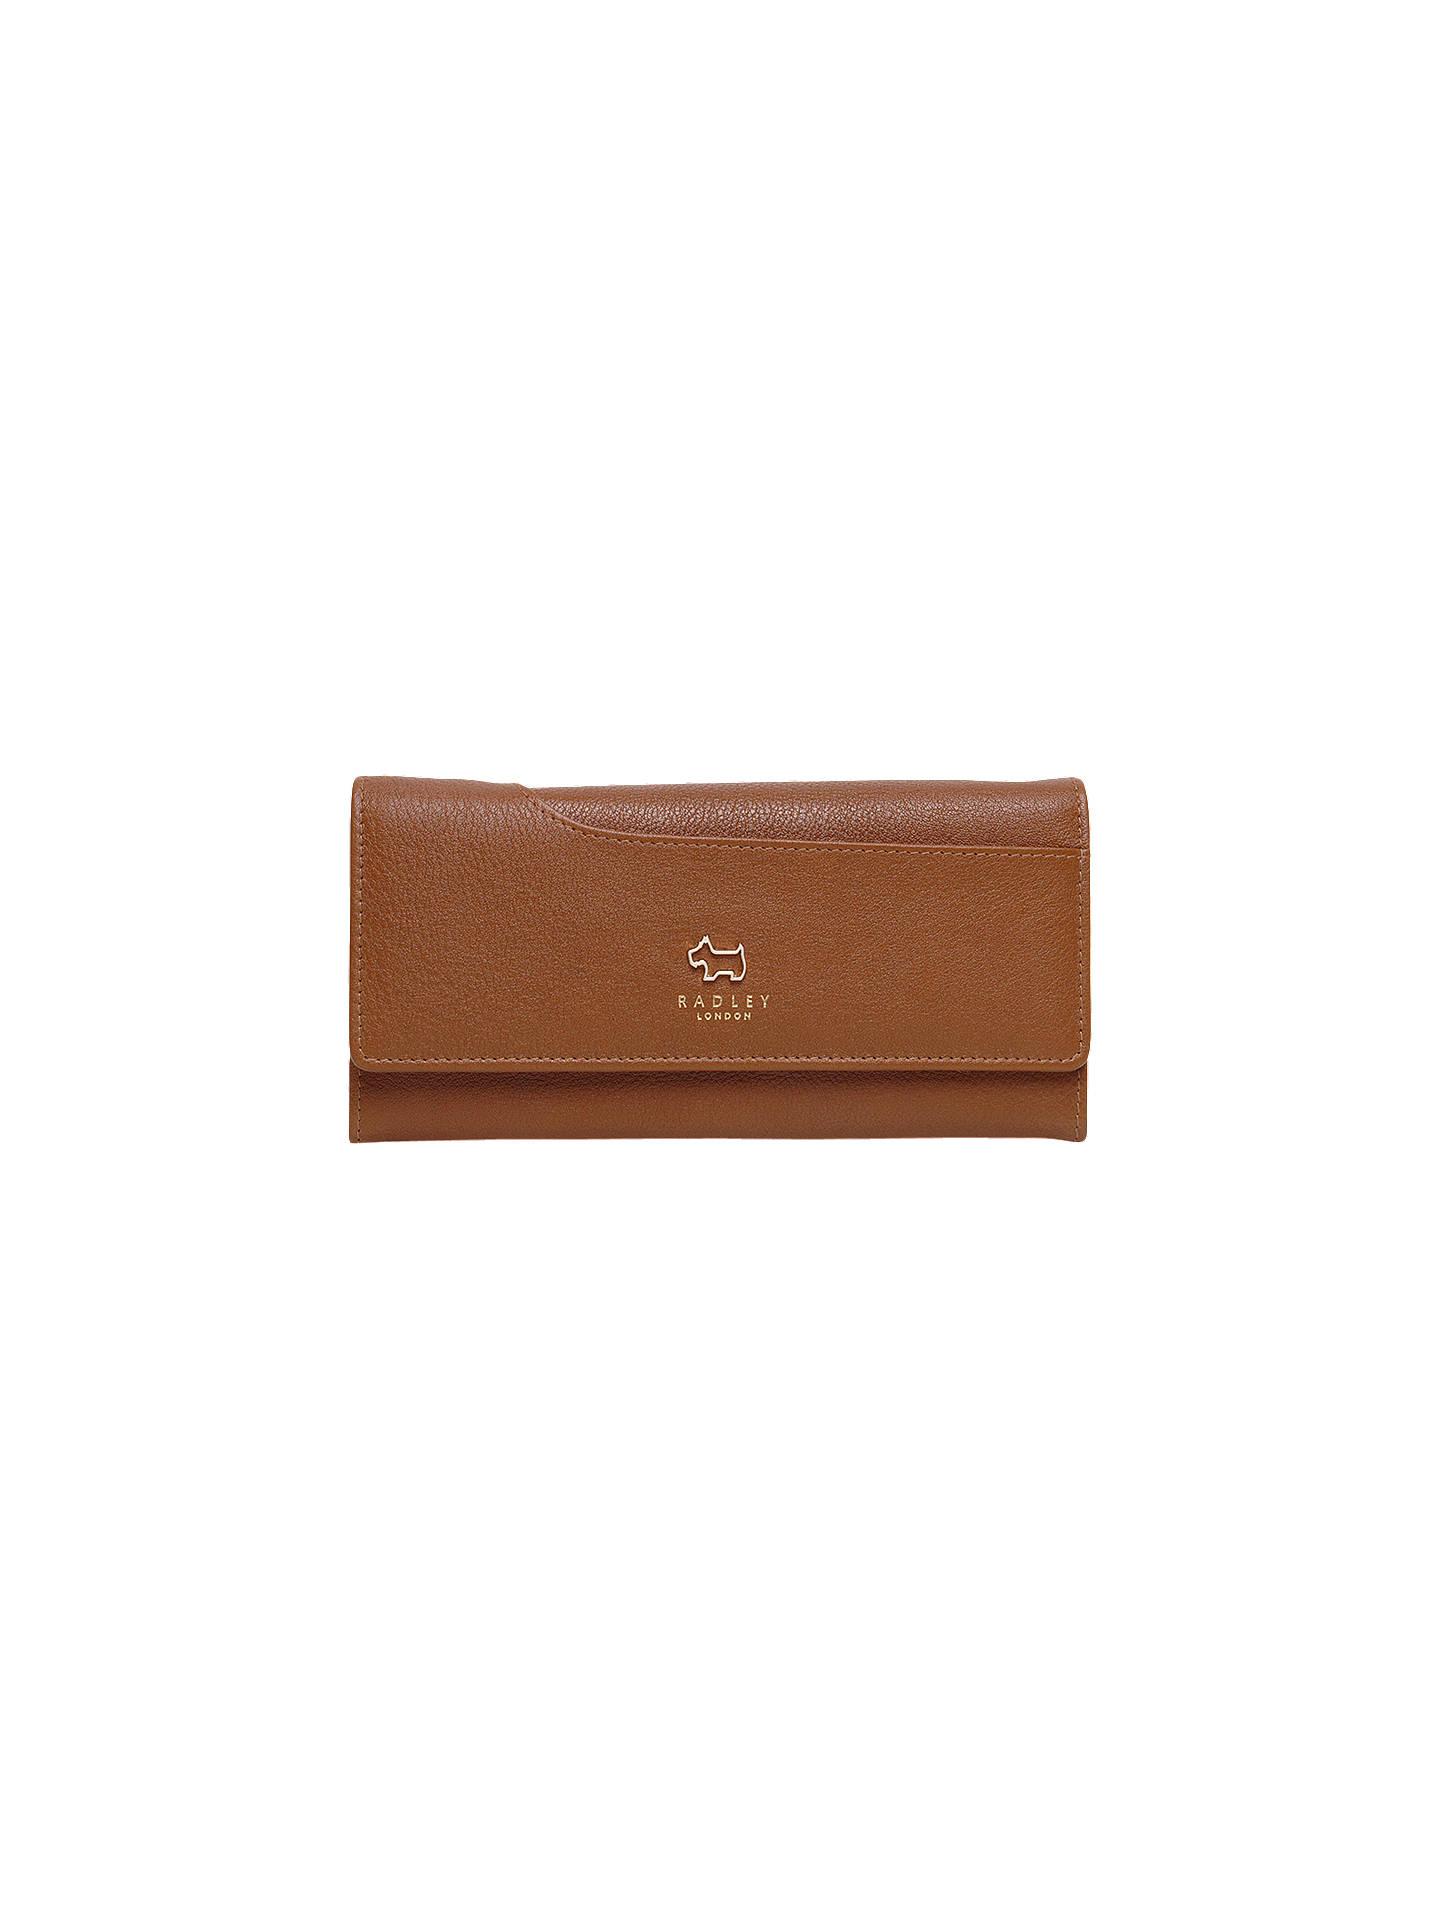 BuyRadley Pockets Leather Large Matinee Purse, Grain Tan Online at johnlewis.com